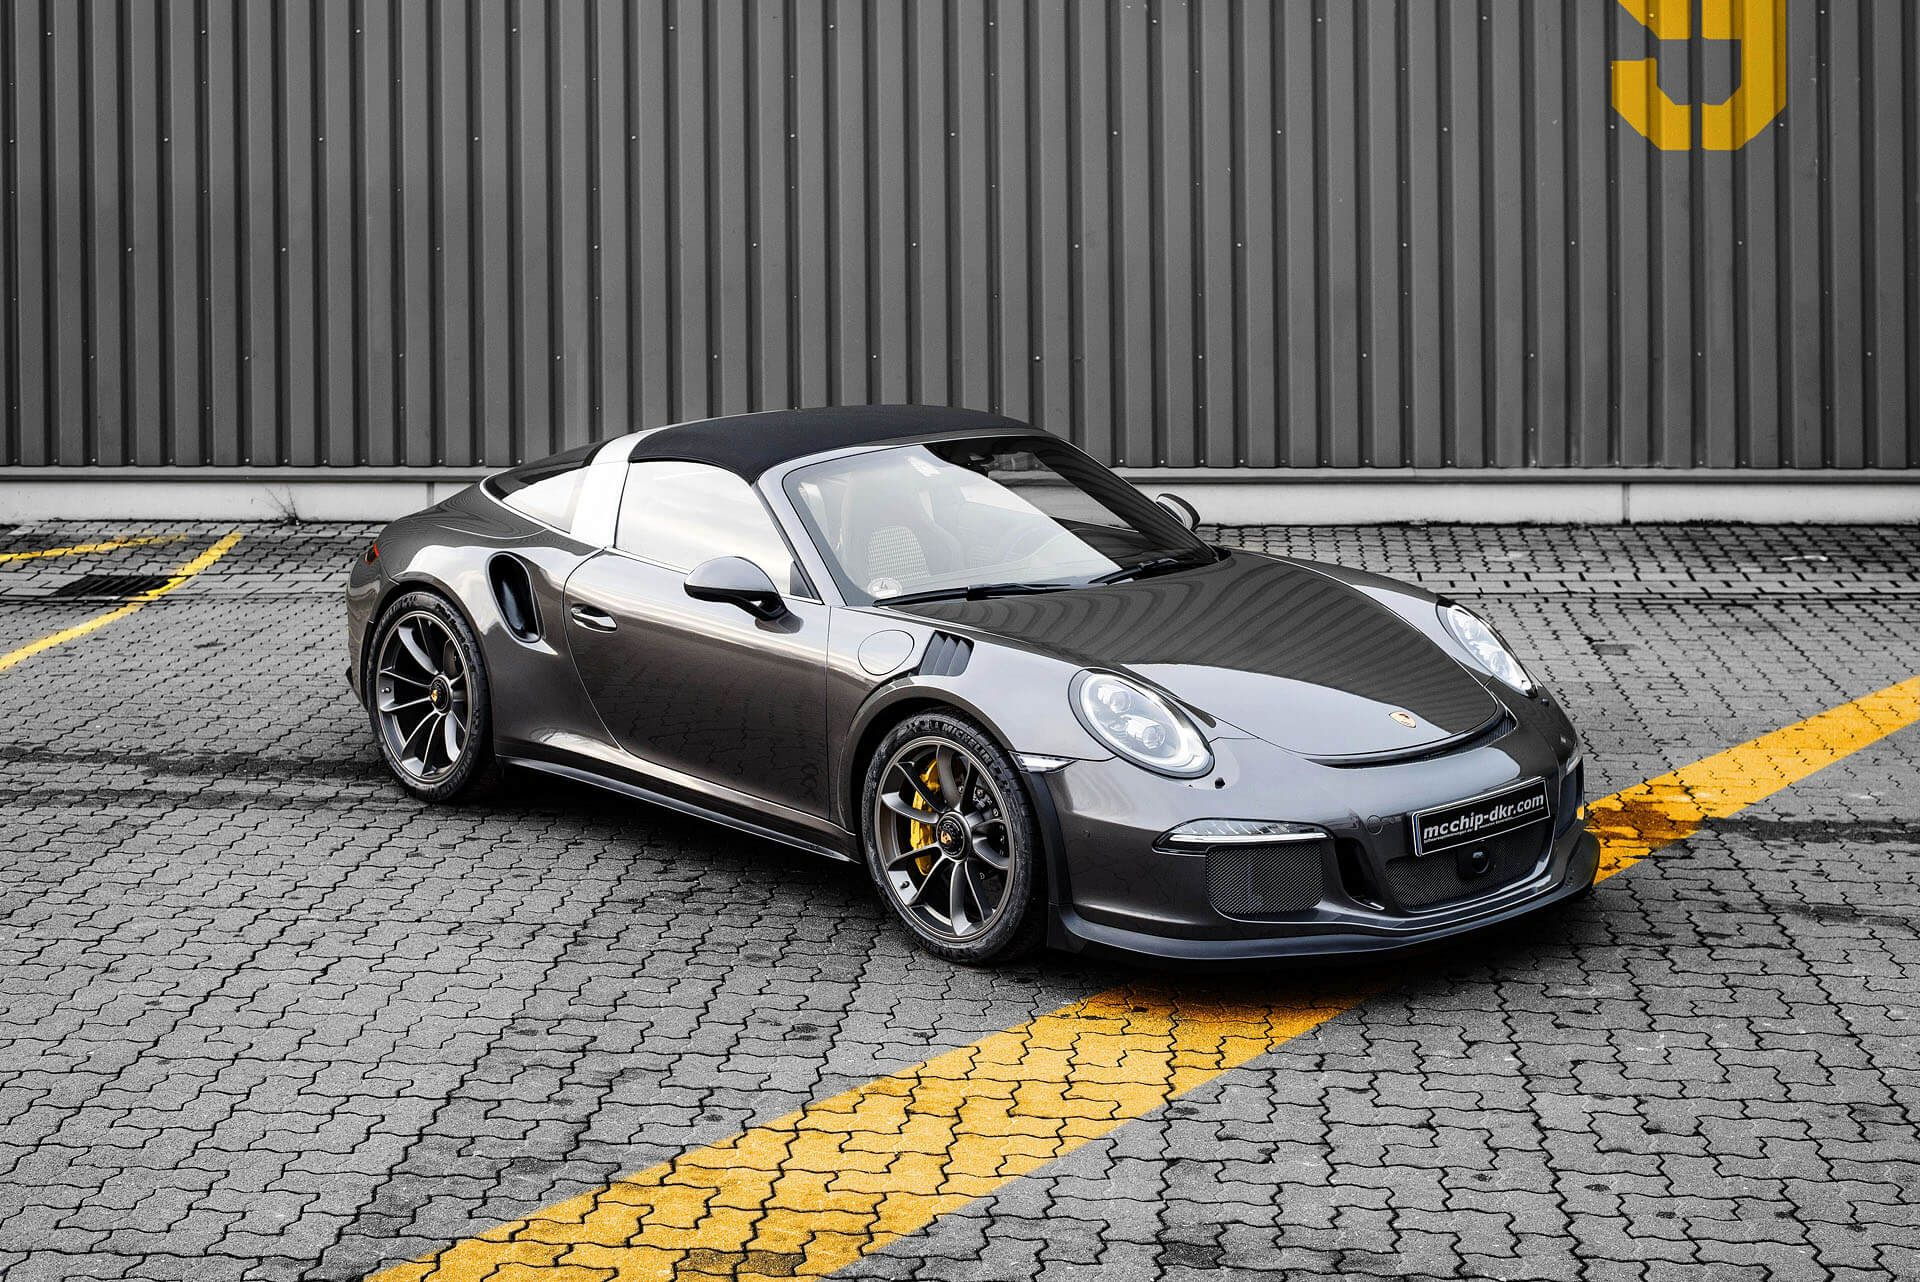 Porsche 991 Targa GT3 RS By Mcchip-dkr Is The Definition